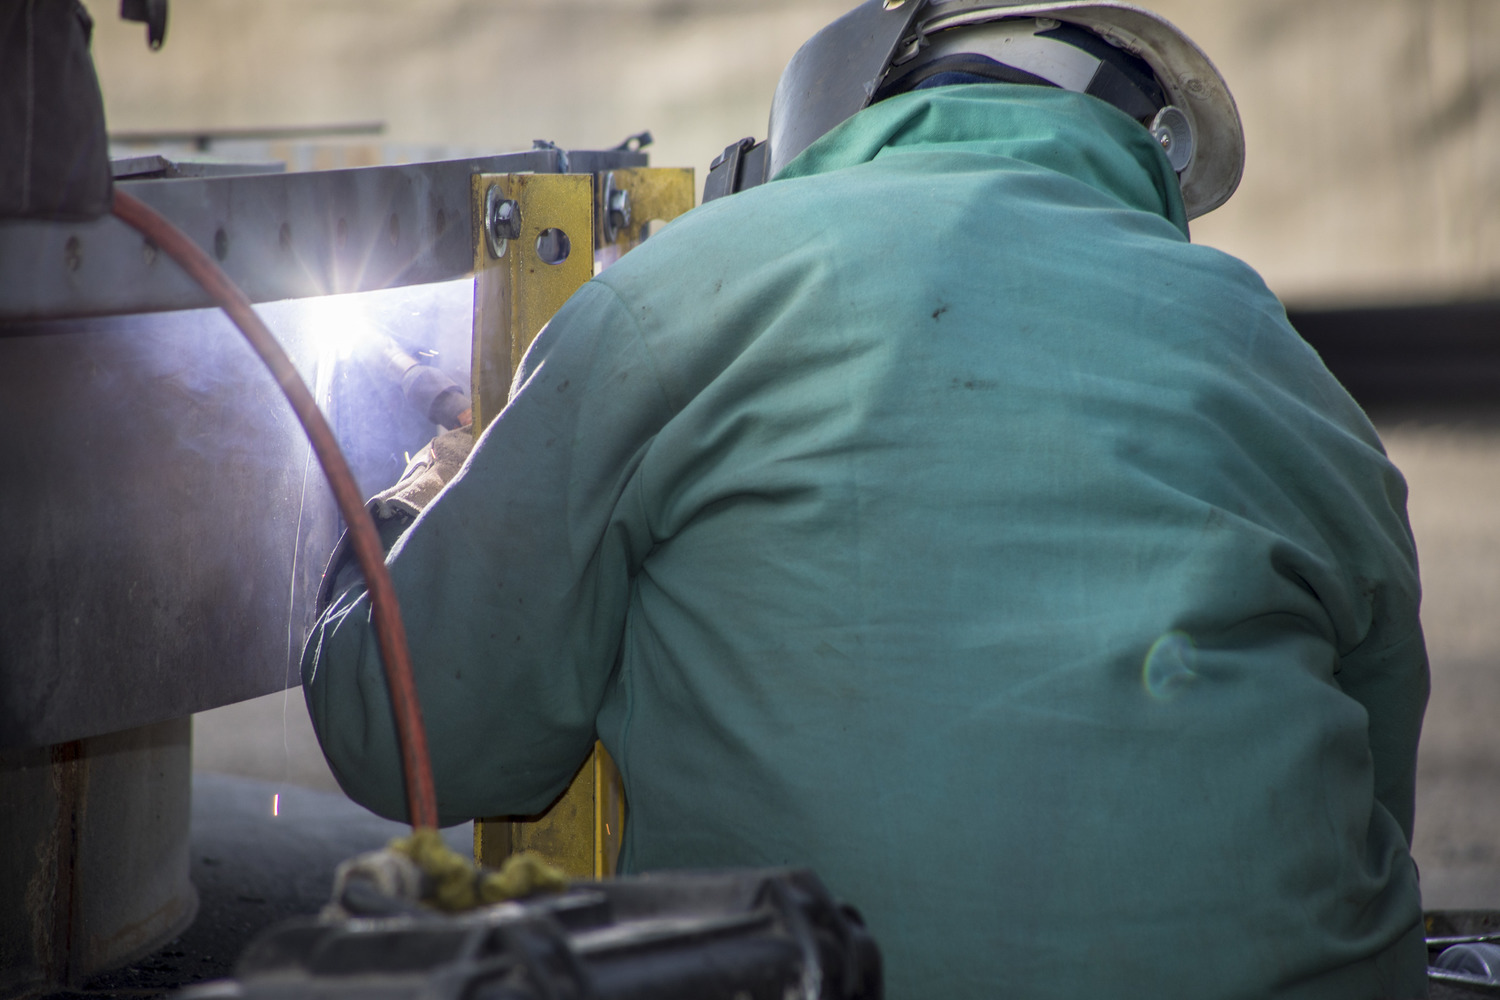 Sundt's Industrial Group self-performed much of the work on site with its own skilled craft workforce. Specialized trades included precision millwrighting, boiler-making, structural ironworking, piping, concrete and electrical.